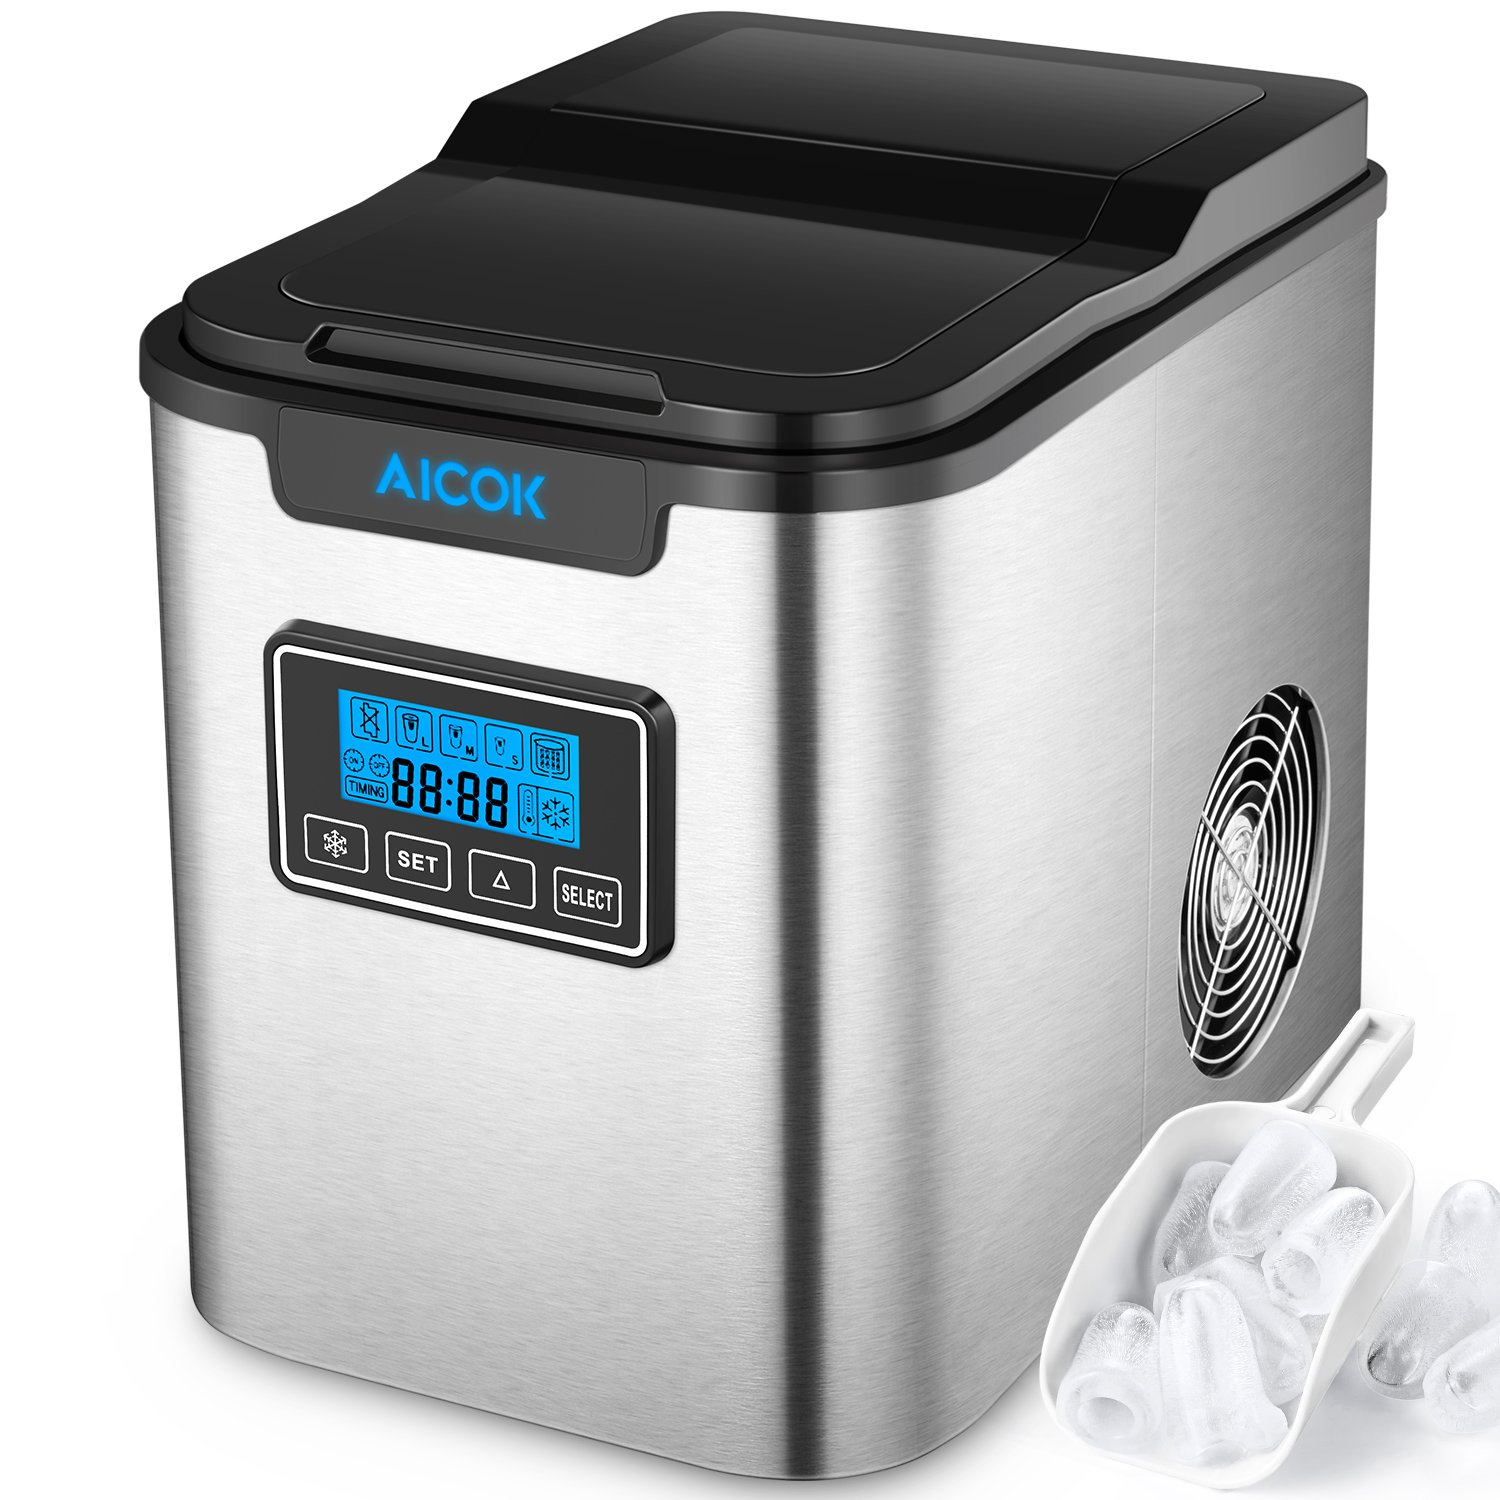 AICOK Self-Clean Portable Countertop Ice Maker Machine With Ice Scoop And Basket